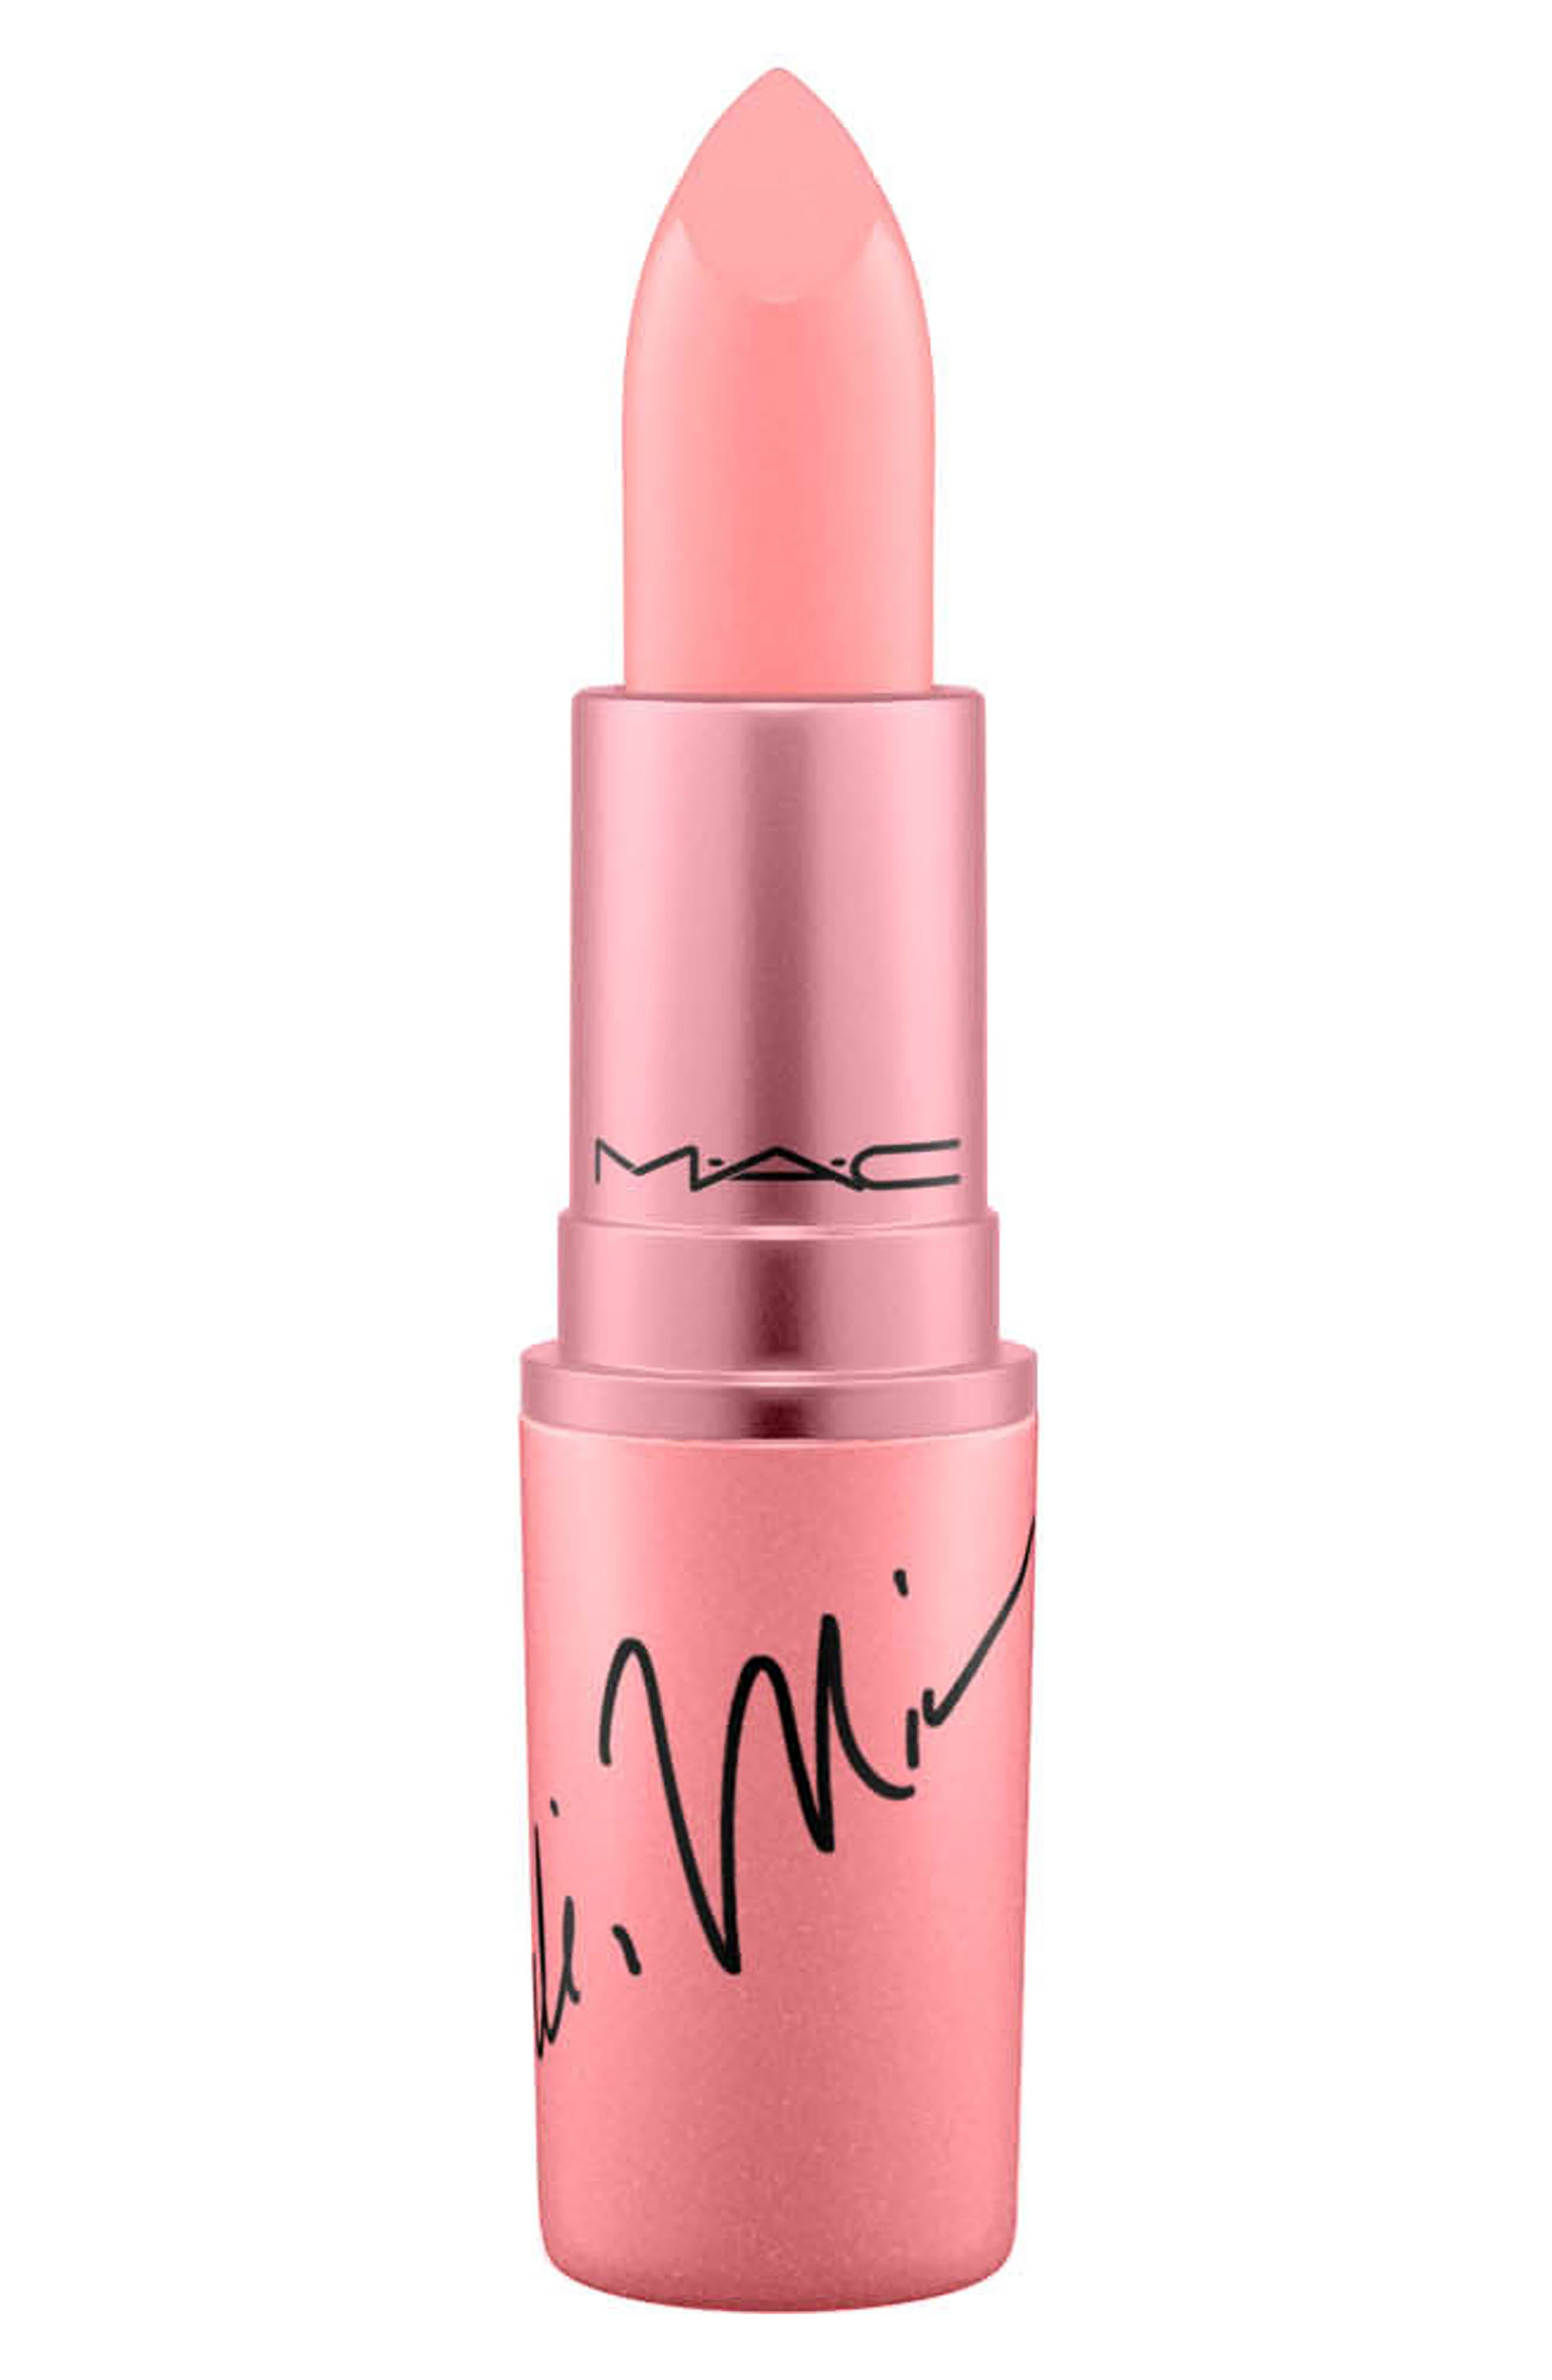 MAC x Nicki Minaj Lipstick (Limited Edition)